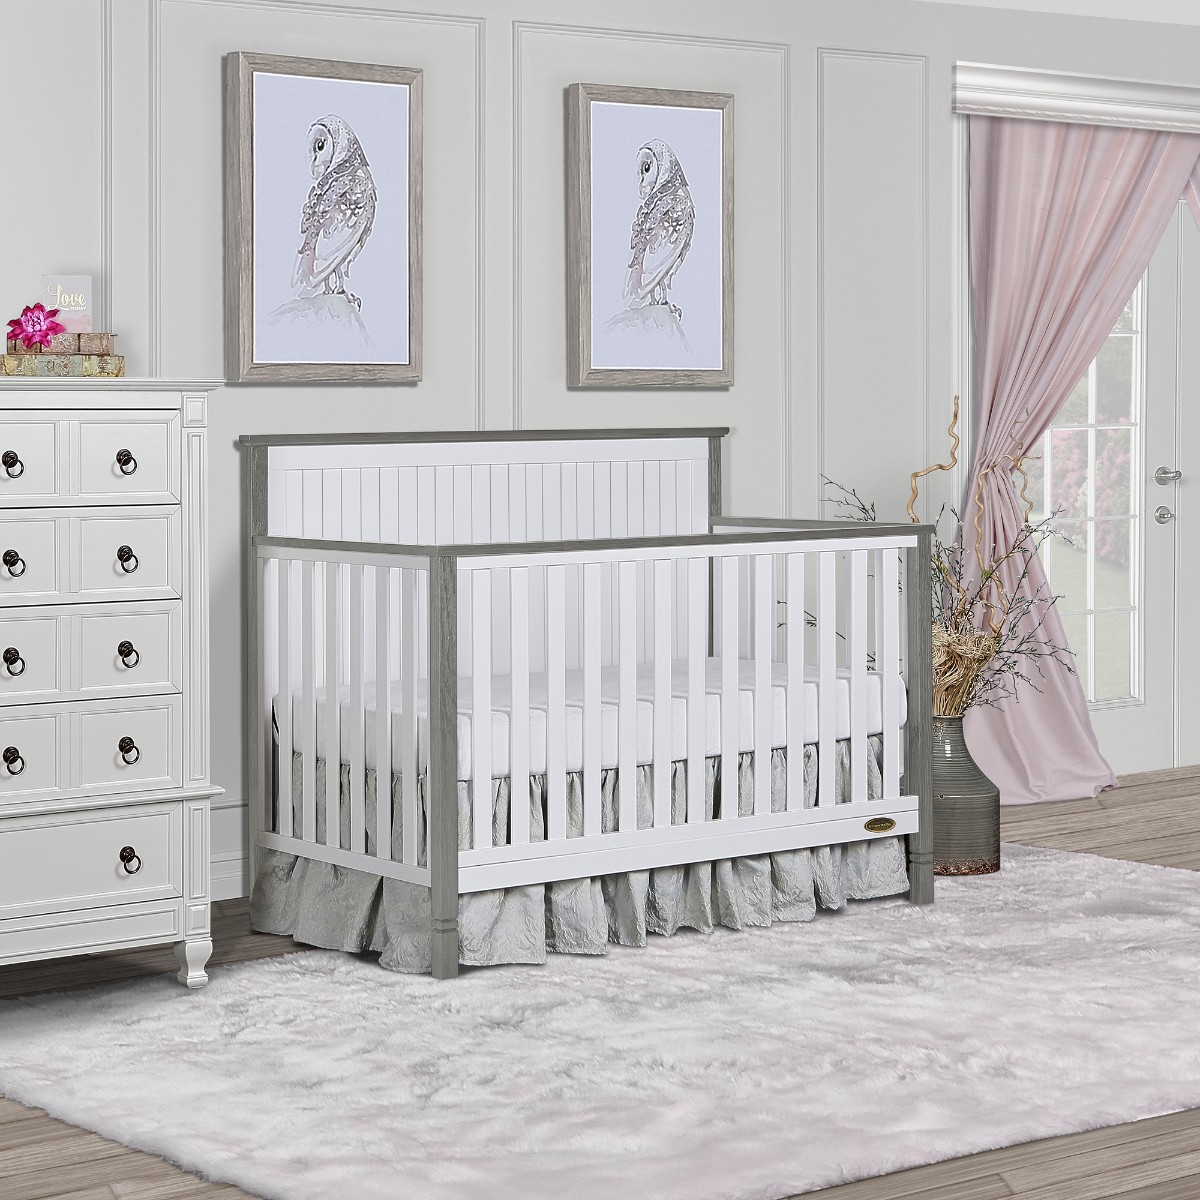 Alexa II 5 in 1 Convertible Crib - Dream On Me 728-B2SGP